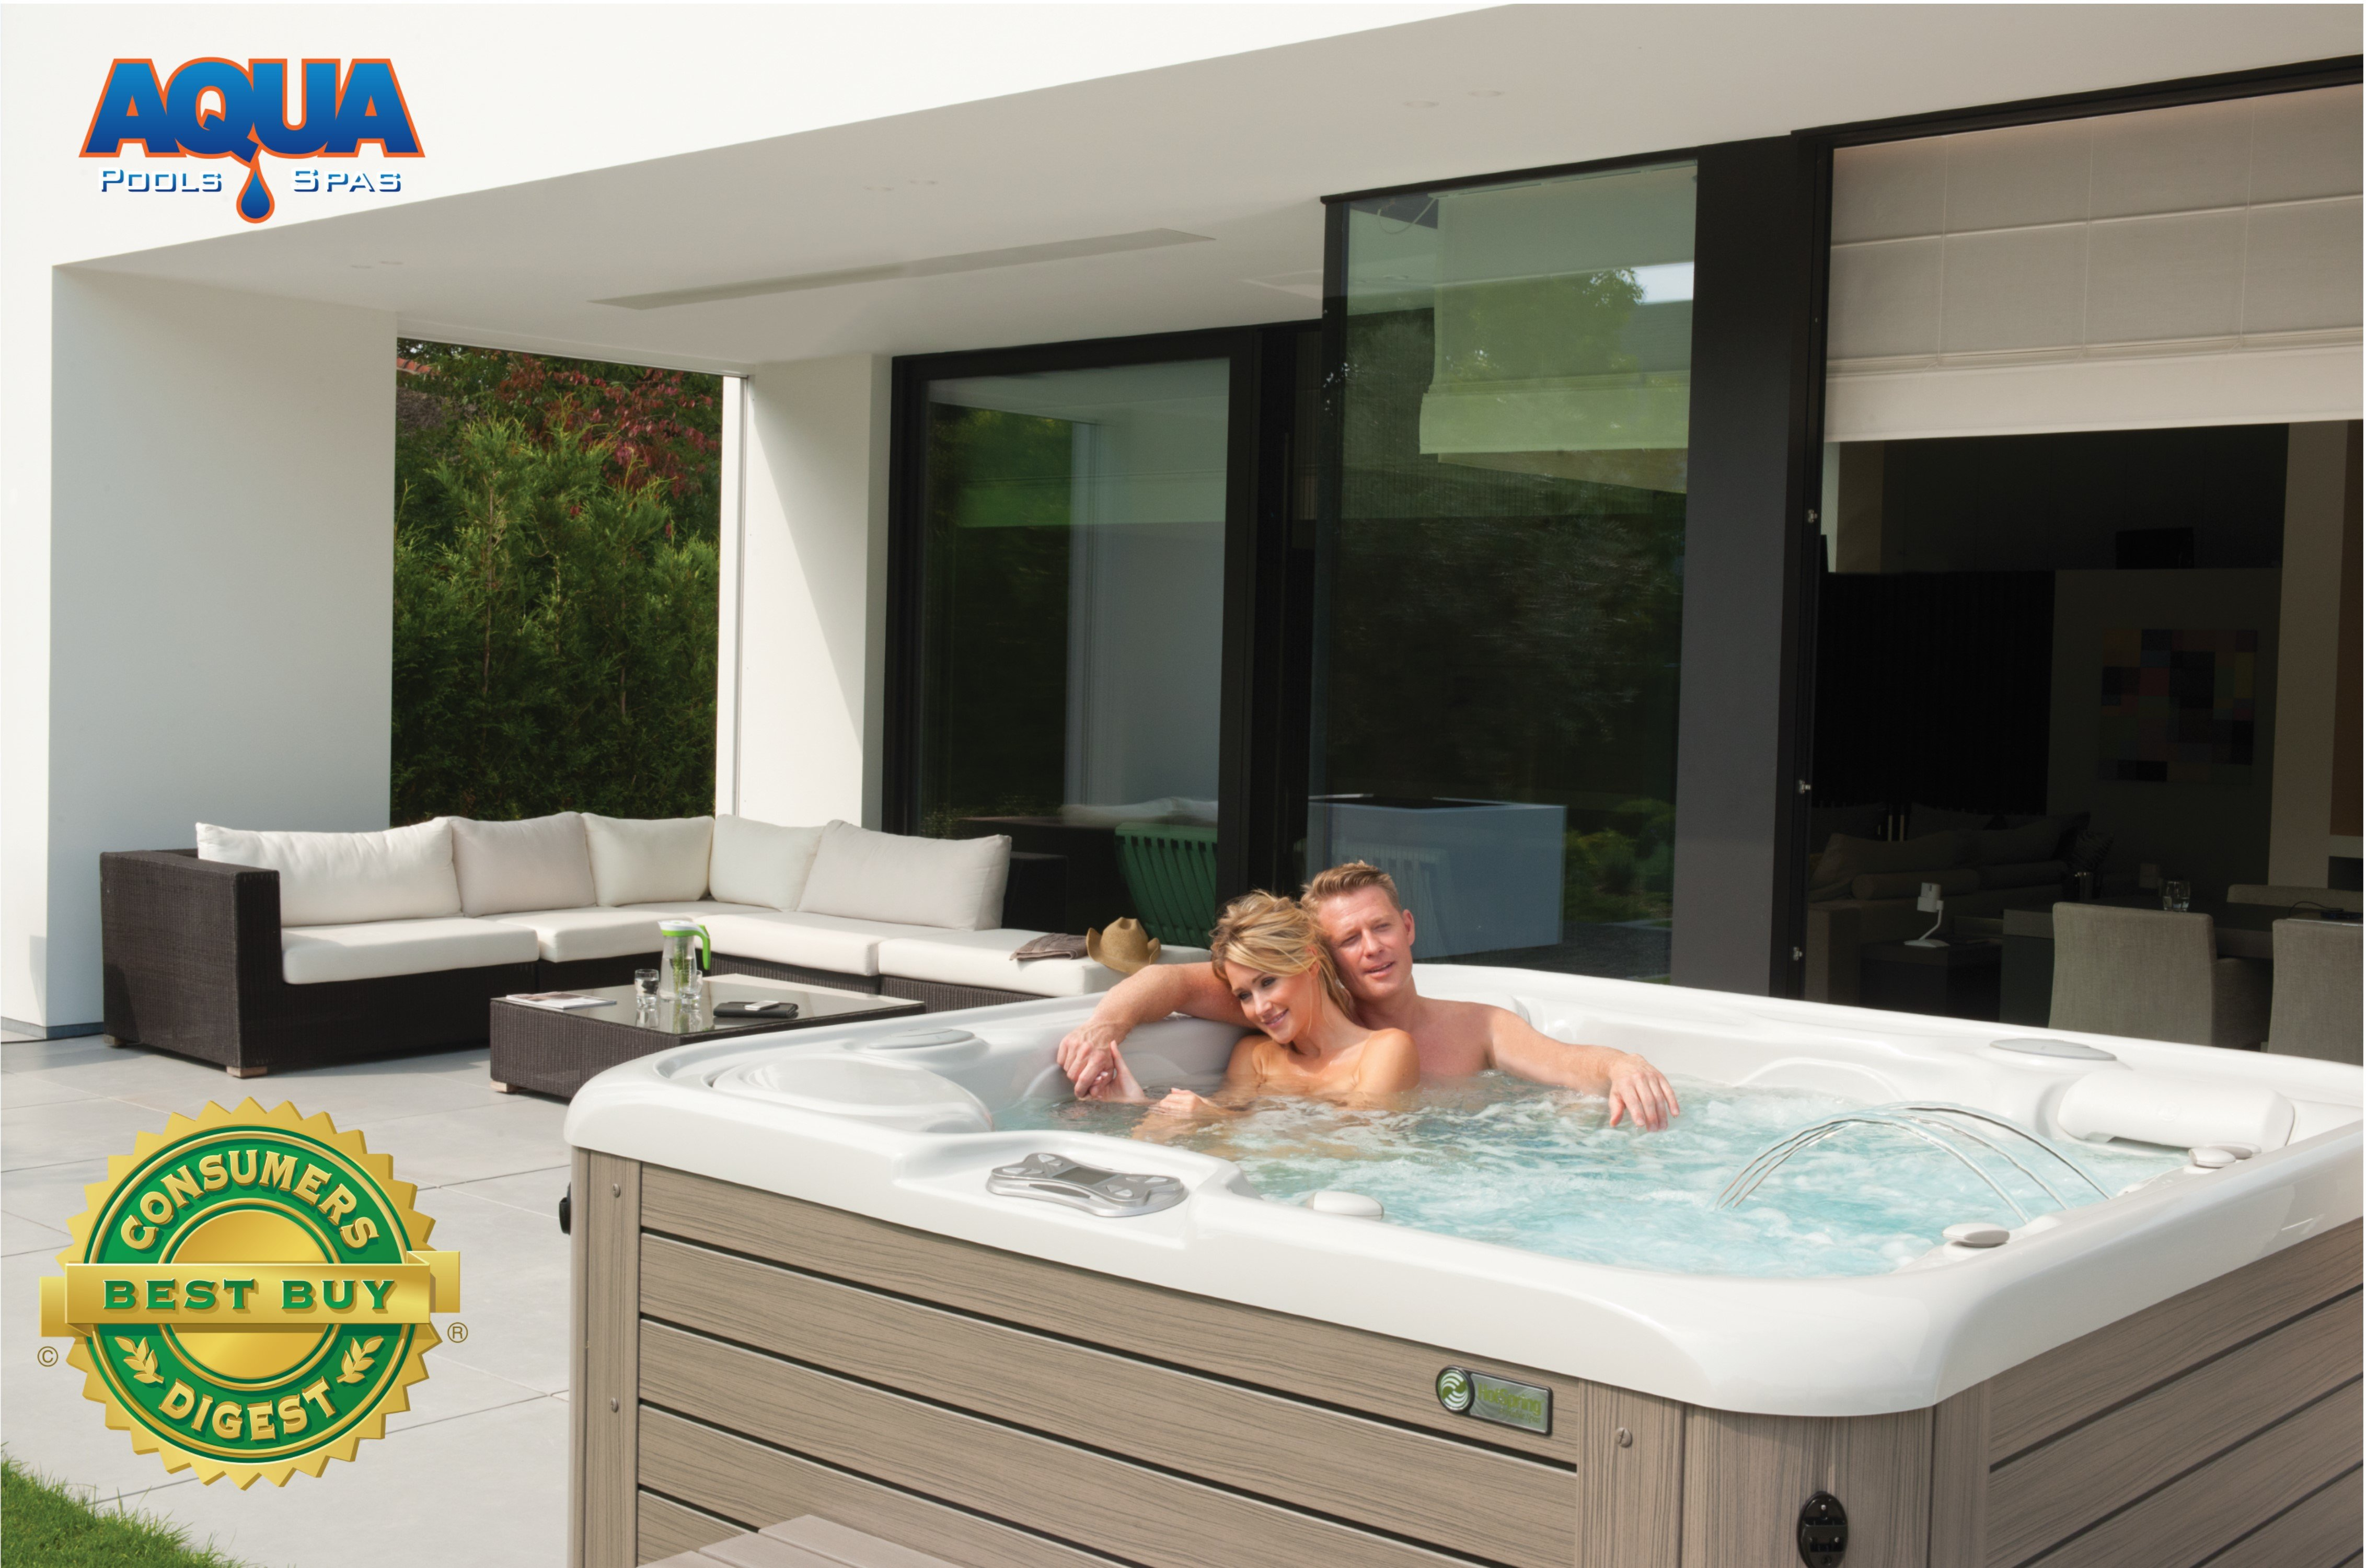 wayfair in and round garden portable for tubs best spa play hot plug tub outdoor spas design ideas with